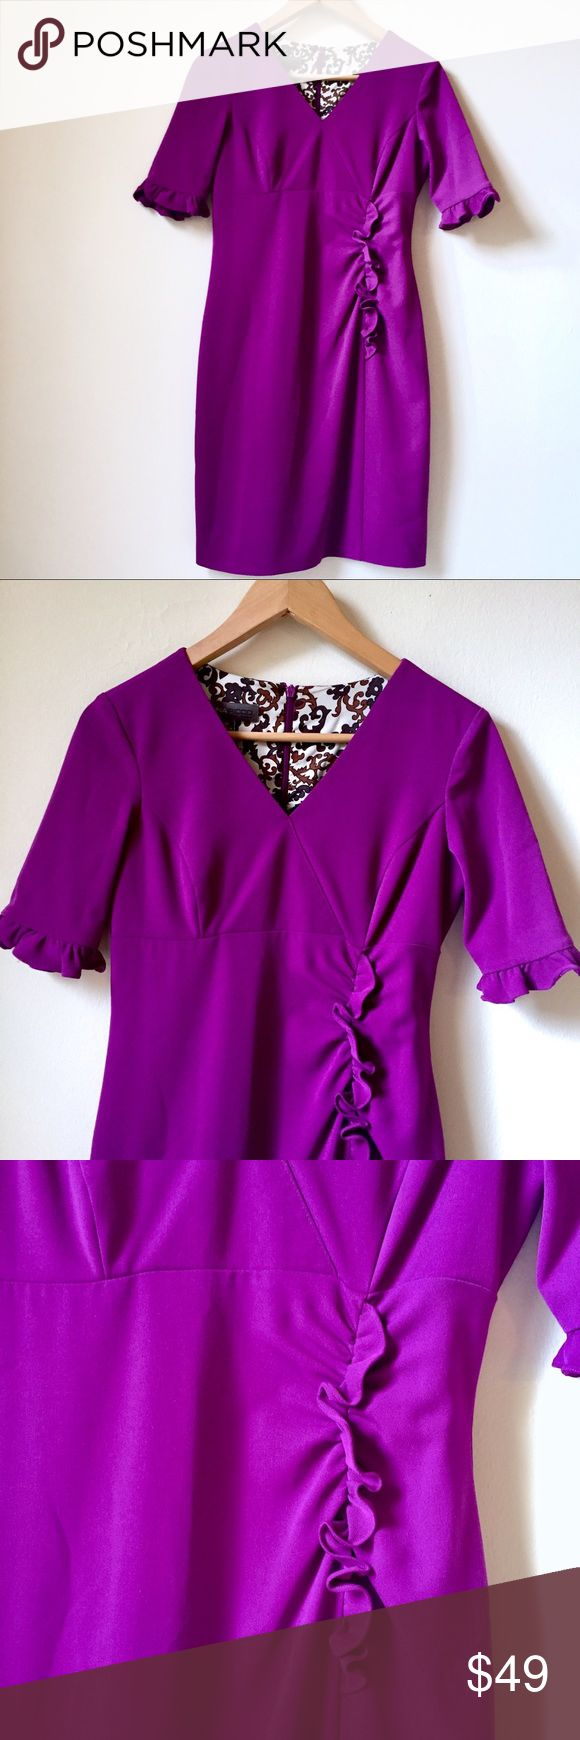 Ruffle accented, petite, purple dress EUC Donna Rico purple dress with ruffle twist accent at waists and end of sleeves. Size 2 petite.   ✔️ Like new condition- I've only worn it on a TV studio set. The bright purple color really POPS on air!   ✔️Ruffle twist accent at waist is very flattering. Also ruffles at end of sleeves, that hit above elbow. Fully lined.   ✔️Great for work, post work and less formal weddings.   ✔️ I had it dry cleaned to sell. Donna Ricco Dresses